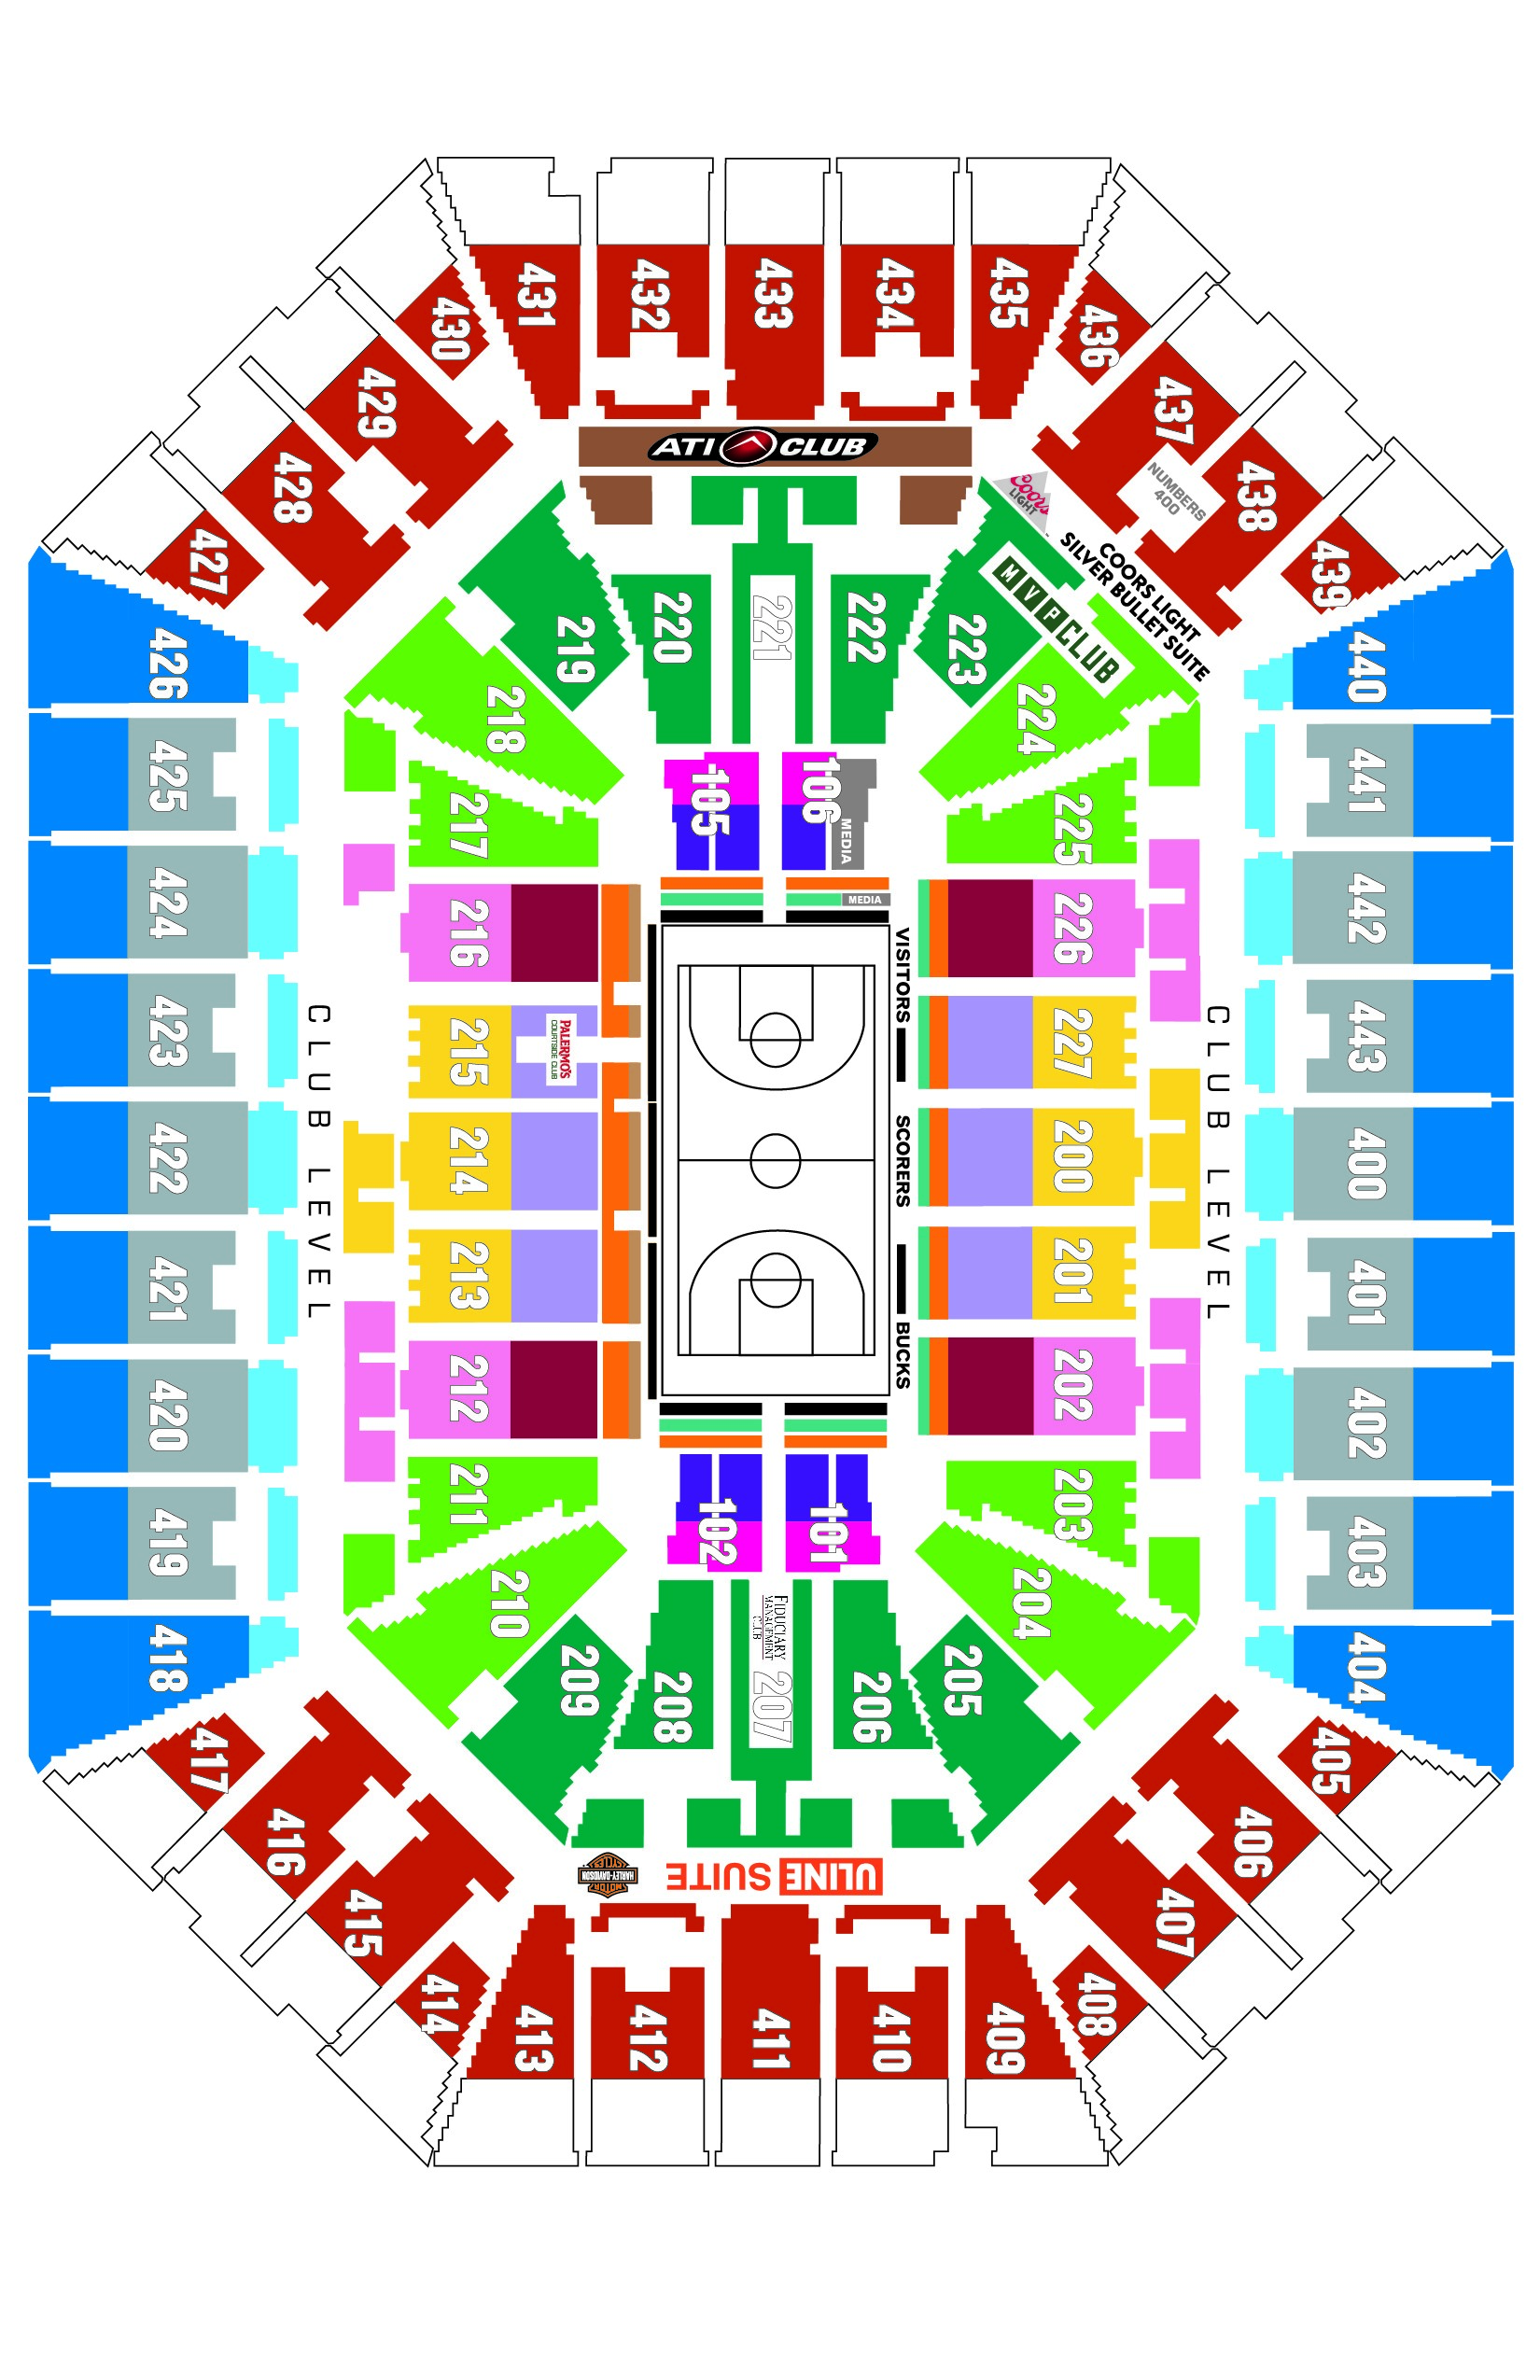 Full Sized Seating Map